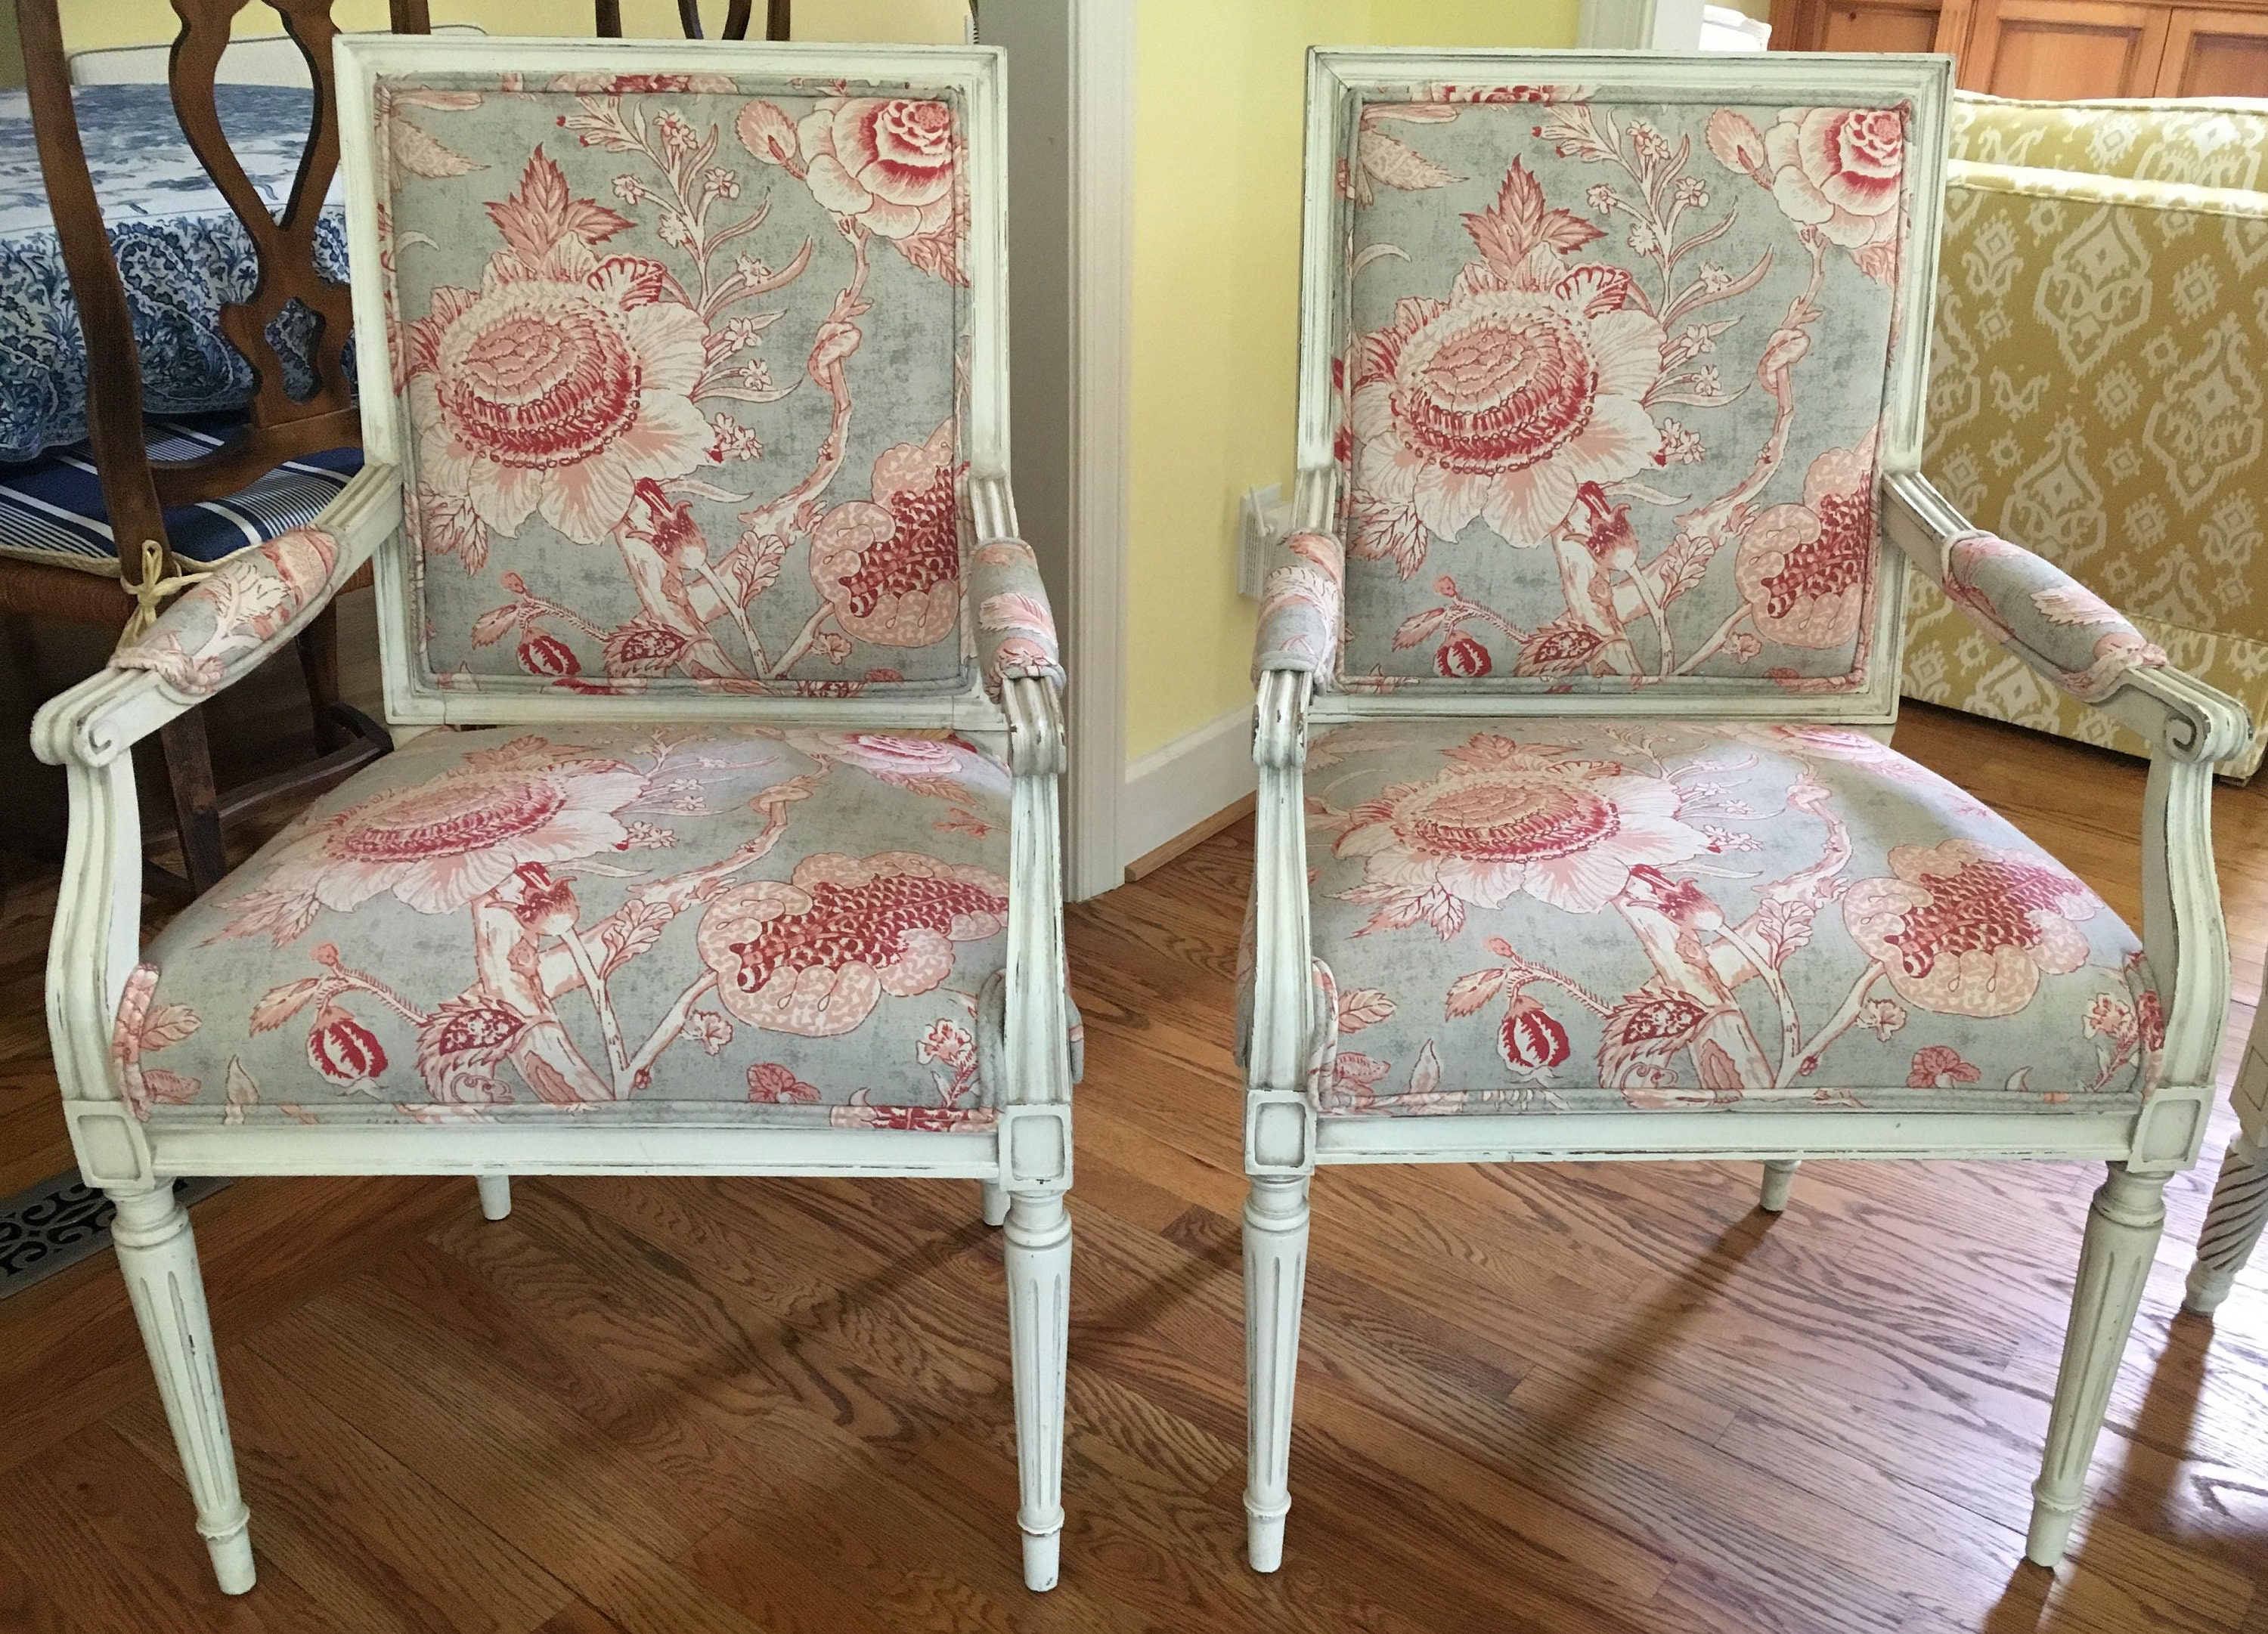 Pair Of Freshly Lacquered French Style Chairs In Thibaut Etsy